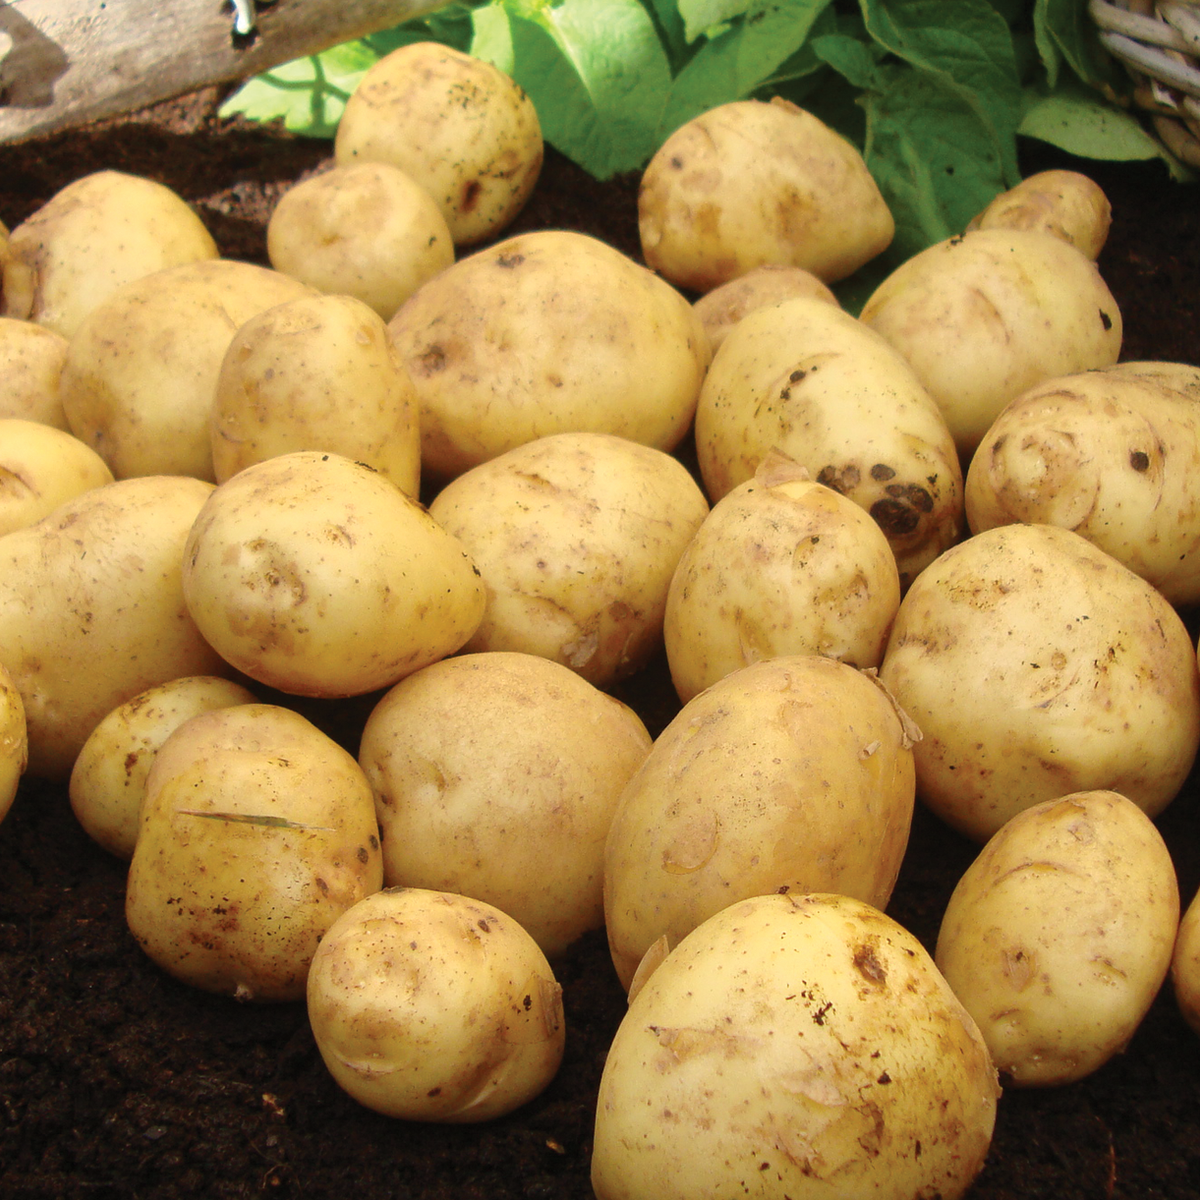 British Queen Second Early Seed Potatoes 2kg